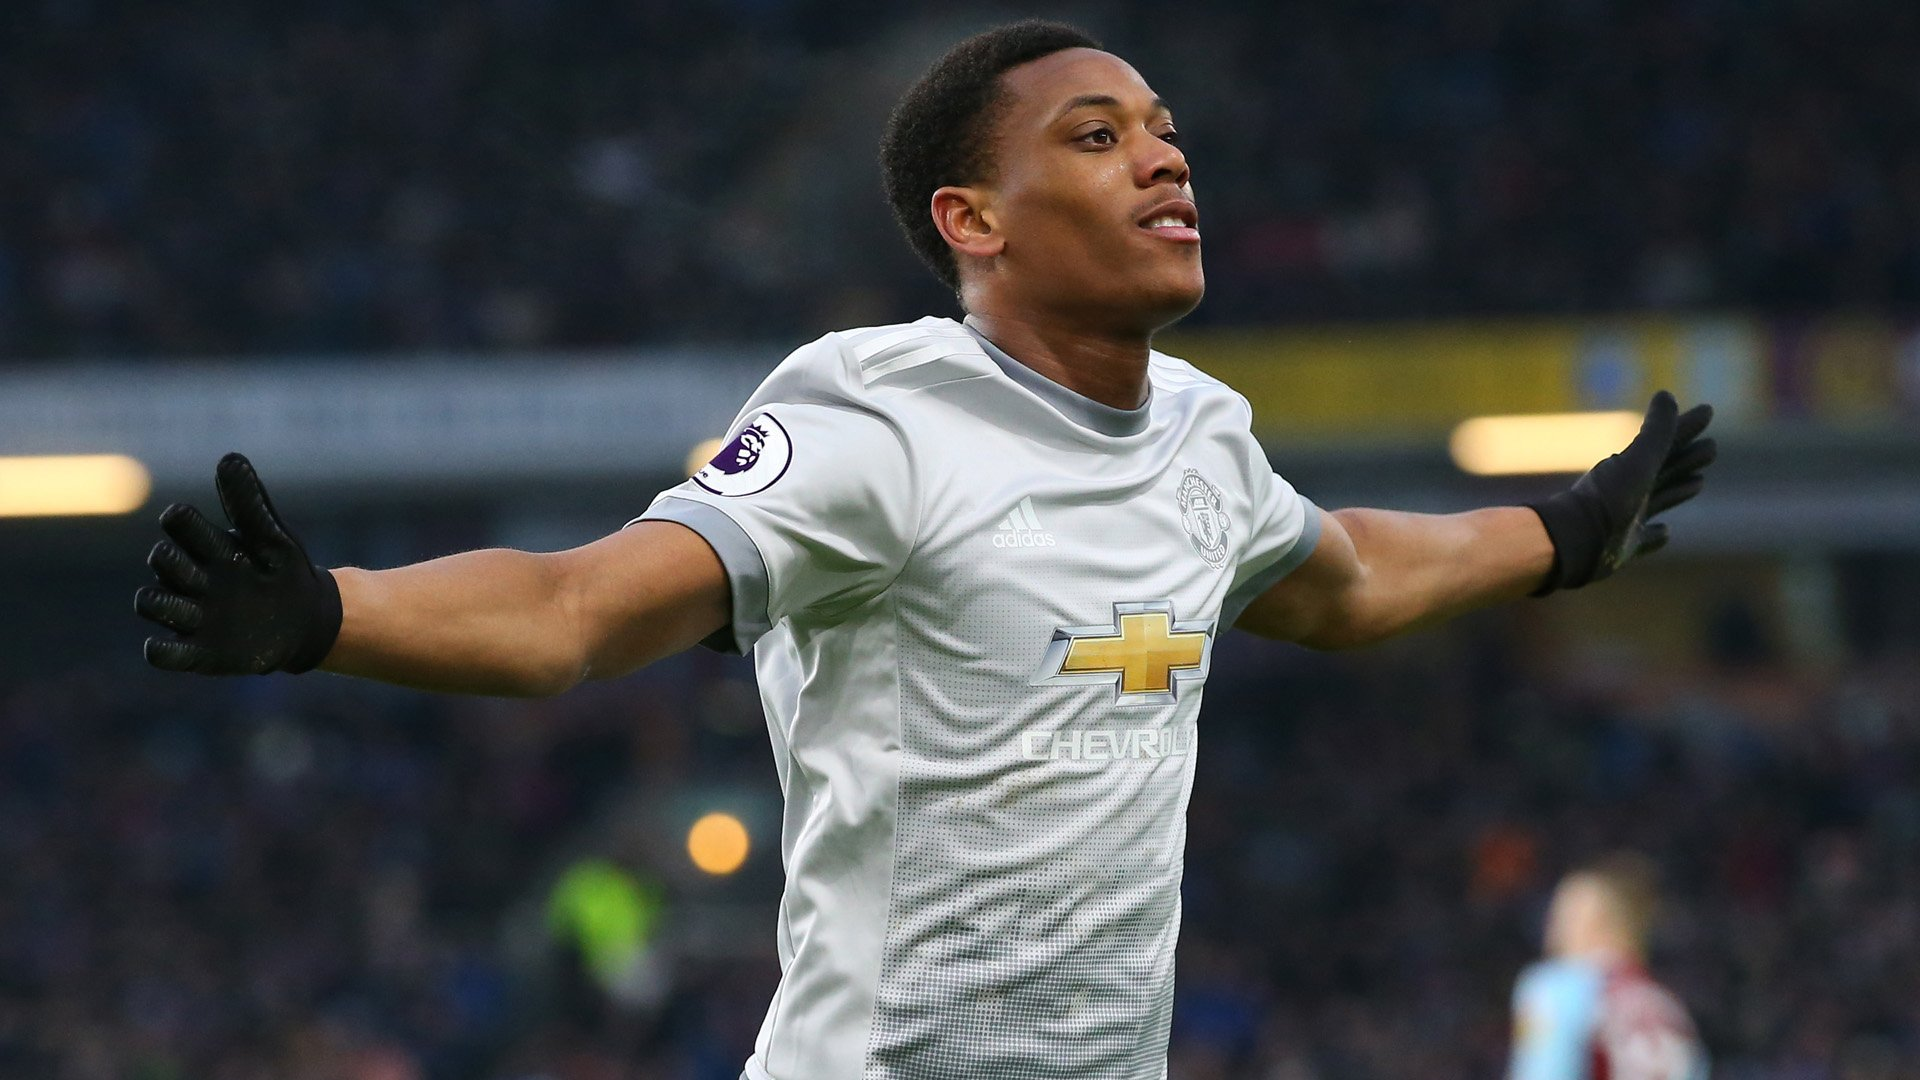 REPORT: Burnley 0-1 Man Utd: Anthony Martial strike gives Man Utd narrow win. https://t.co/3pgagihF33 https://t.co/Dqd0xoyTGD